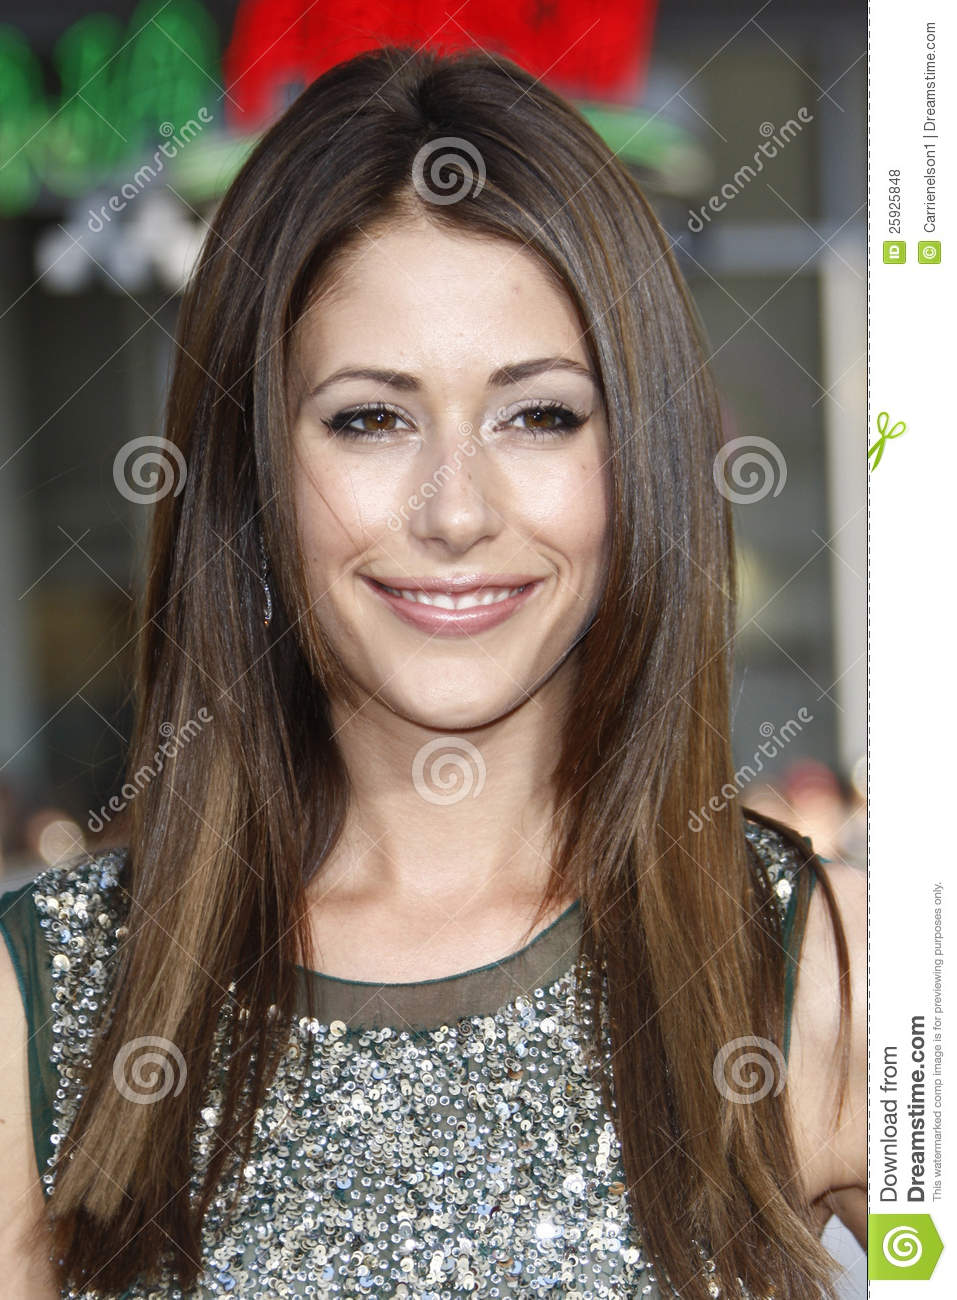 amanda crew silicon valleyamanda crew instagram, amanda crew smallville, amanda crew wikipedia, amanda crew teeth, amanda crew silicon valley, amanda crew husband, amanda crew films, amanda crew wallpapers, amanda crew wdw, amanda crew wiki, amanda crew look alike, amanda crew and zac efron, amanda crew twitter, amanda crew body measurements, amanda crew hot photo, amanda crew, amanda crew imdb, amanda crew movies, amanda crew boyfriend, amanda crew 2015